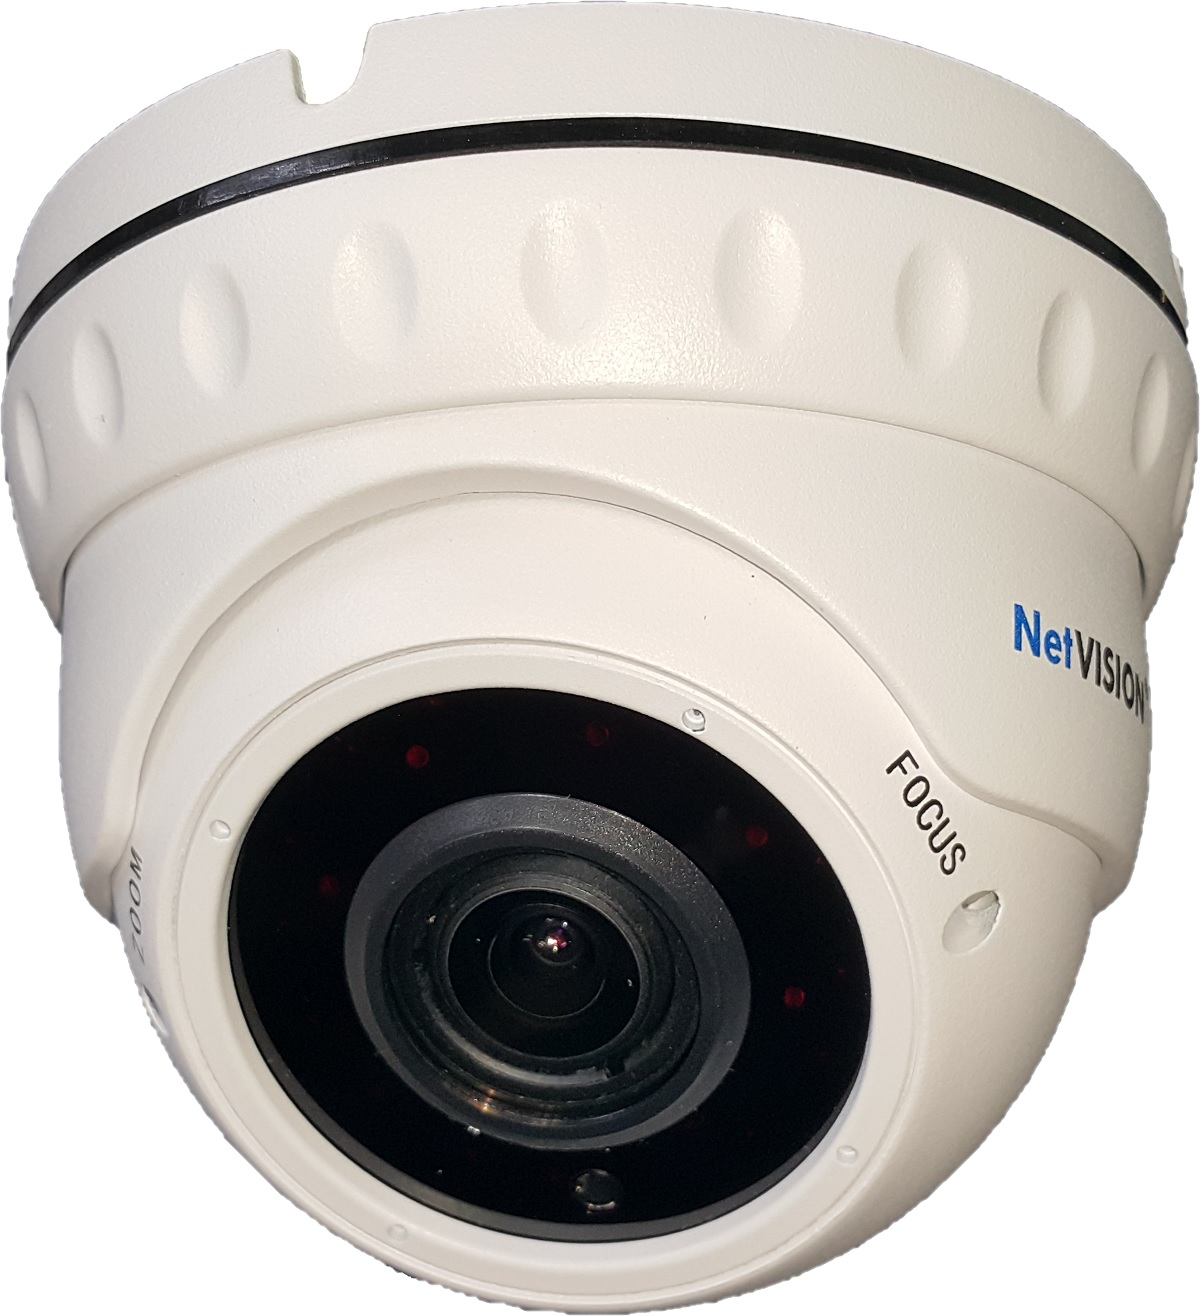 Netvision HD 4in1 2.8-12mm Manuel Zoom Progressive Kamera